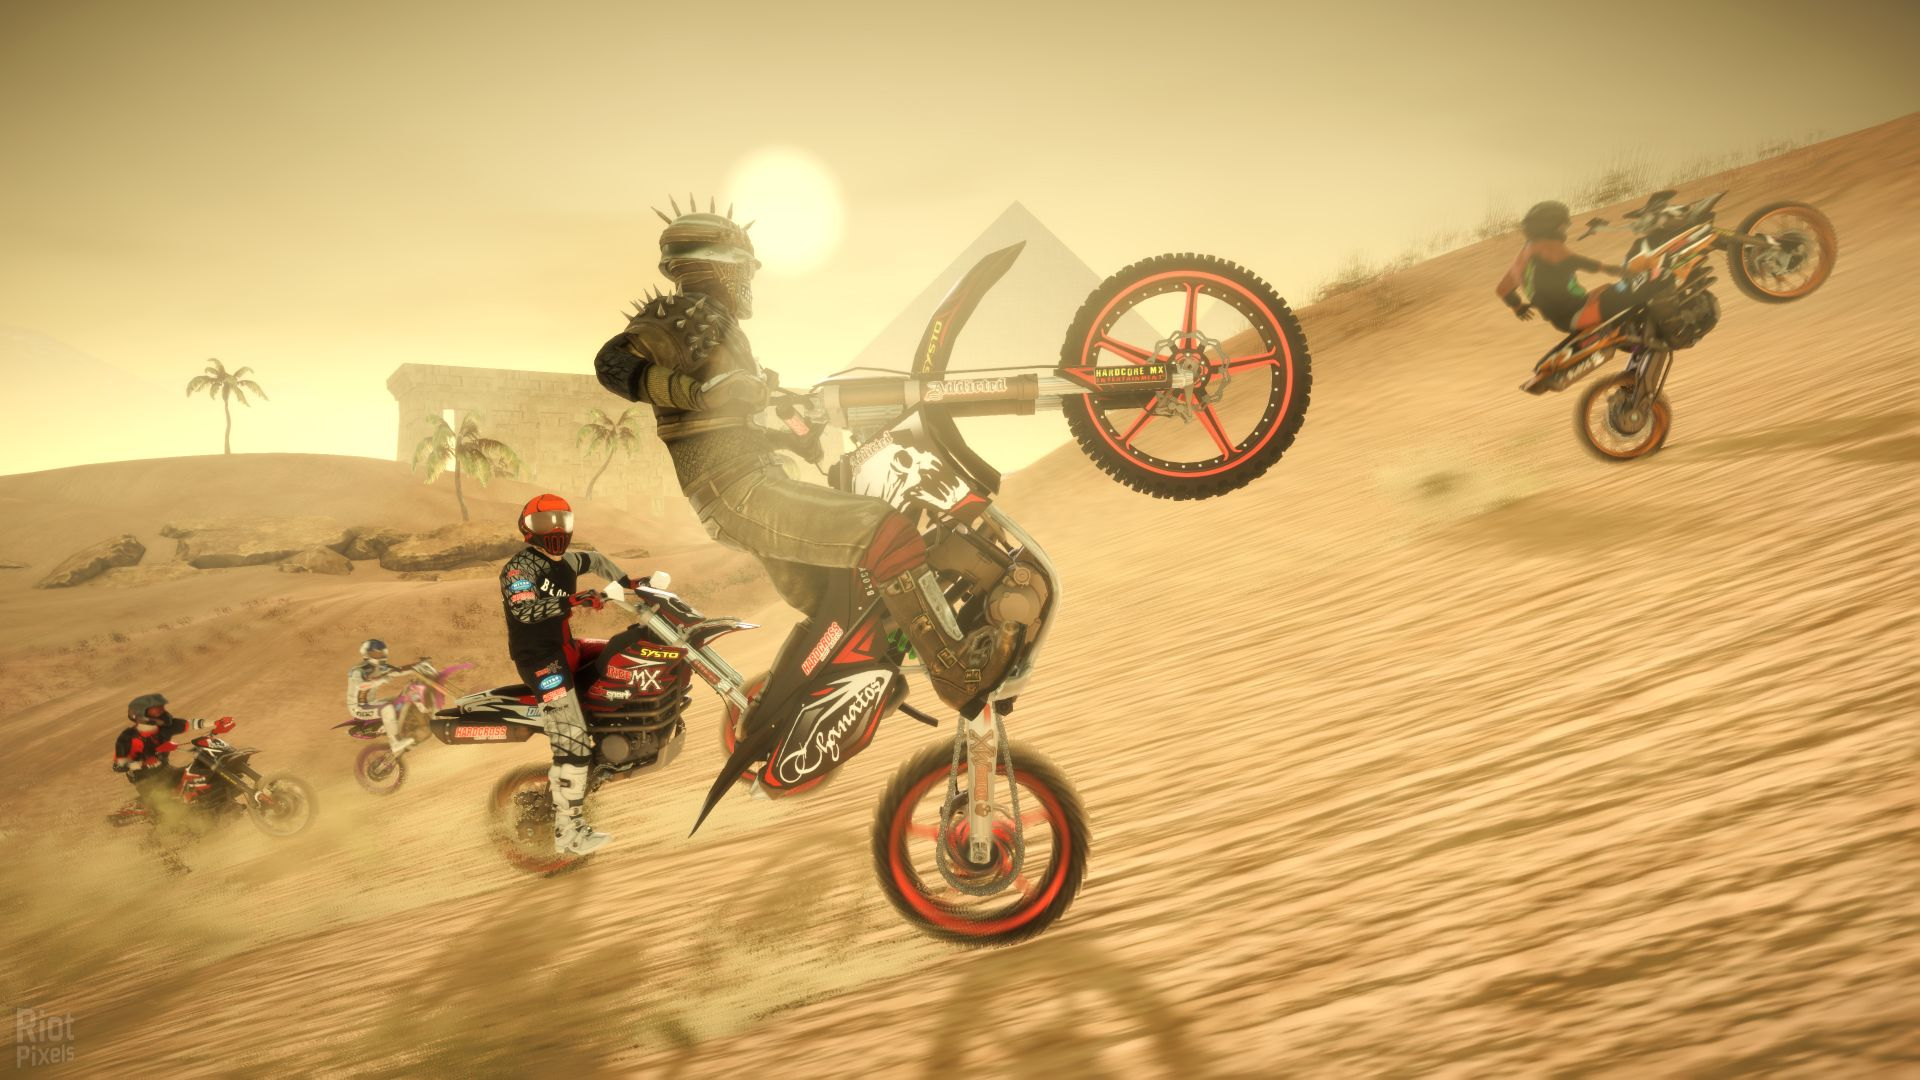 MX Nitro, Мотокросс, Экстрим, ПК, Иксбокс ван, ПС4, MX Nitro, Motocross, extreme, PC, Xbox one, PS4